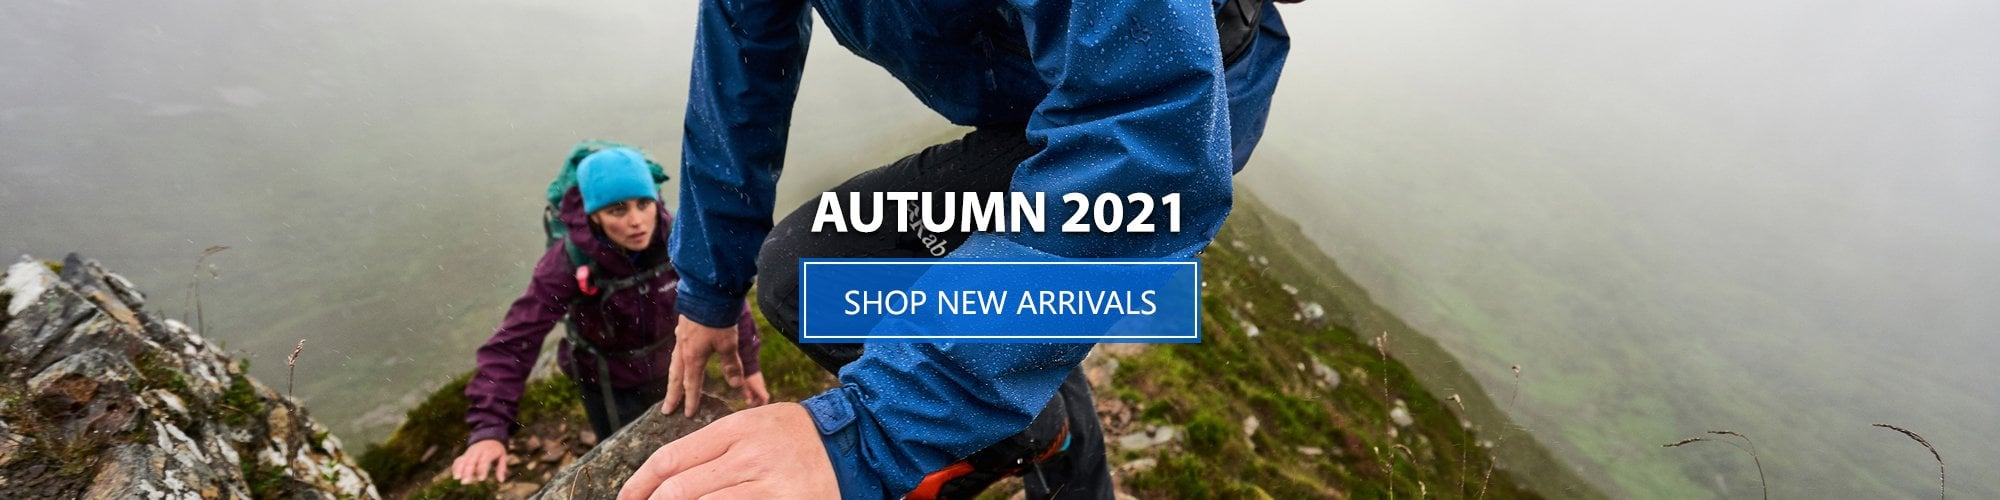 AW21 New Arrivals